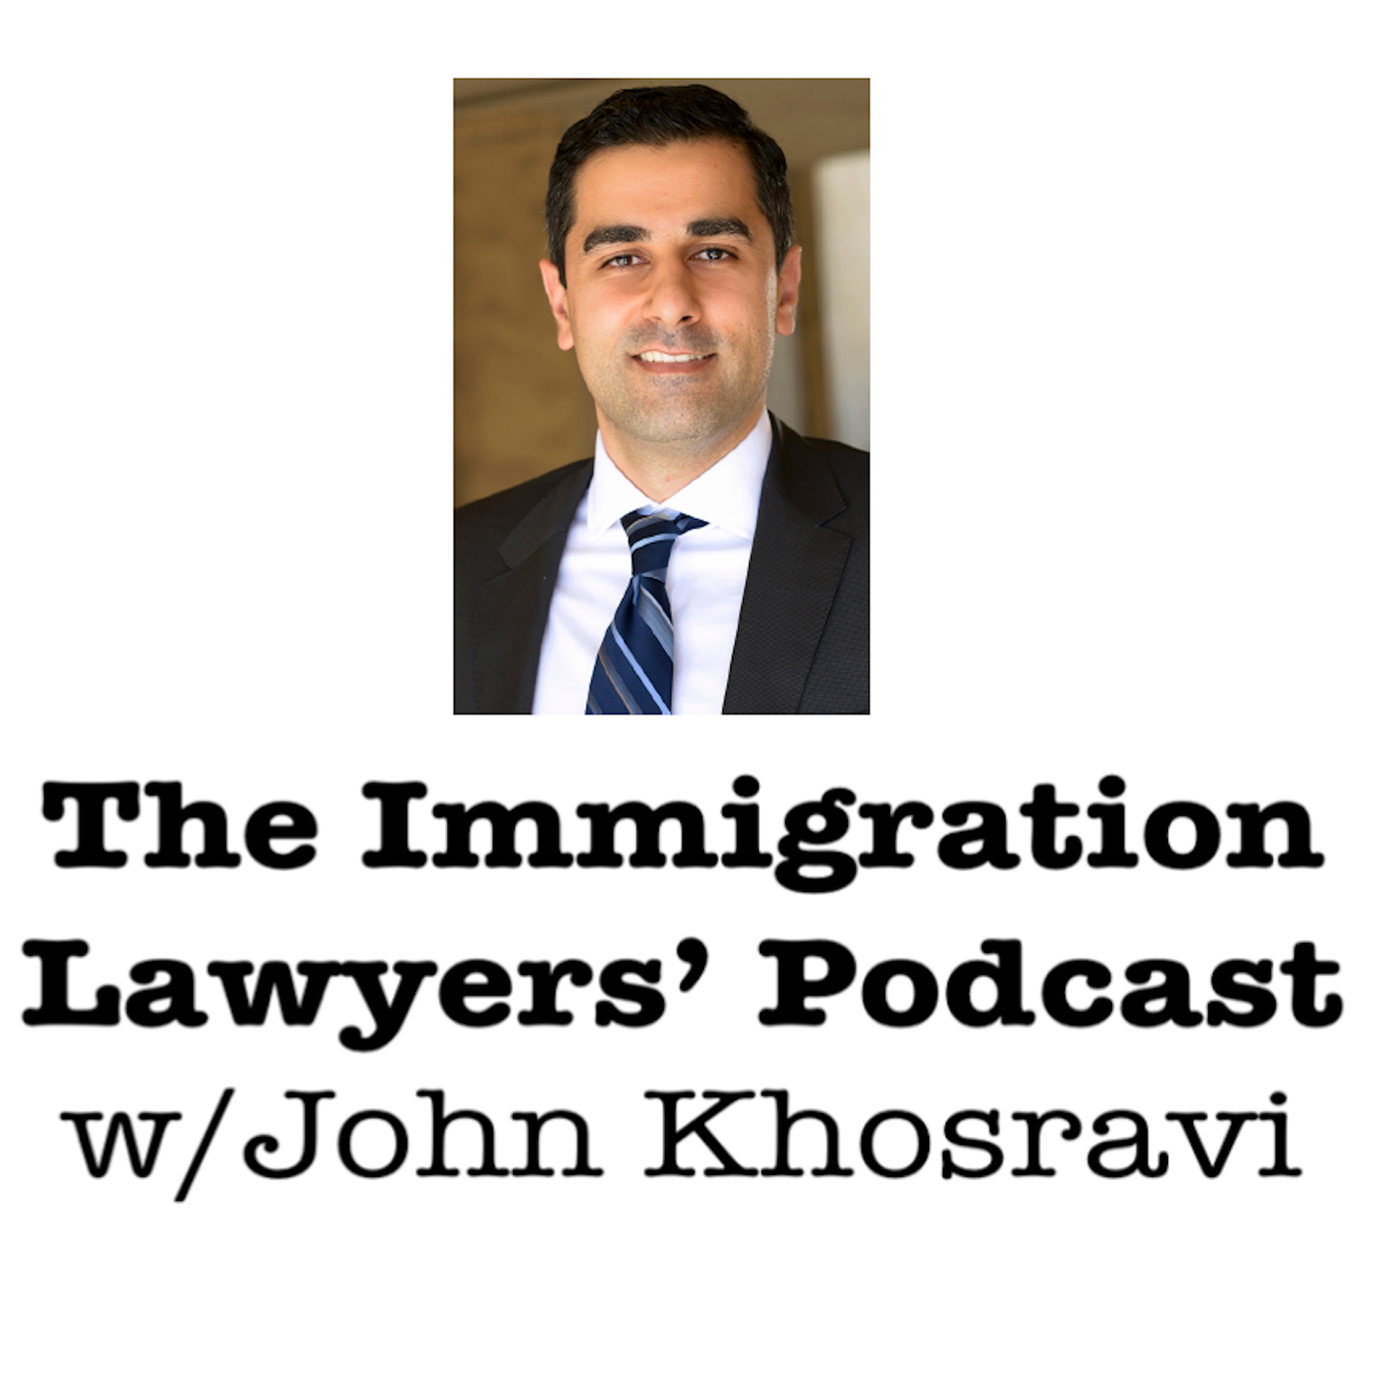 The Immigration Lawyers Podcast   Discussing Visas, Green Cards & Citizenship: Practice & Policy show art